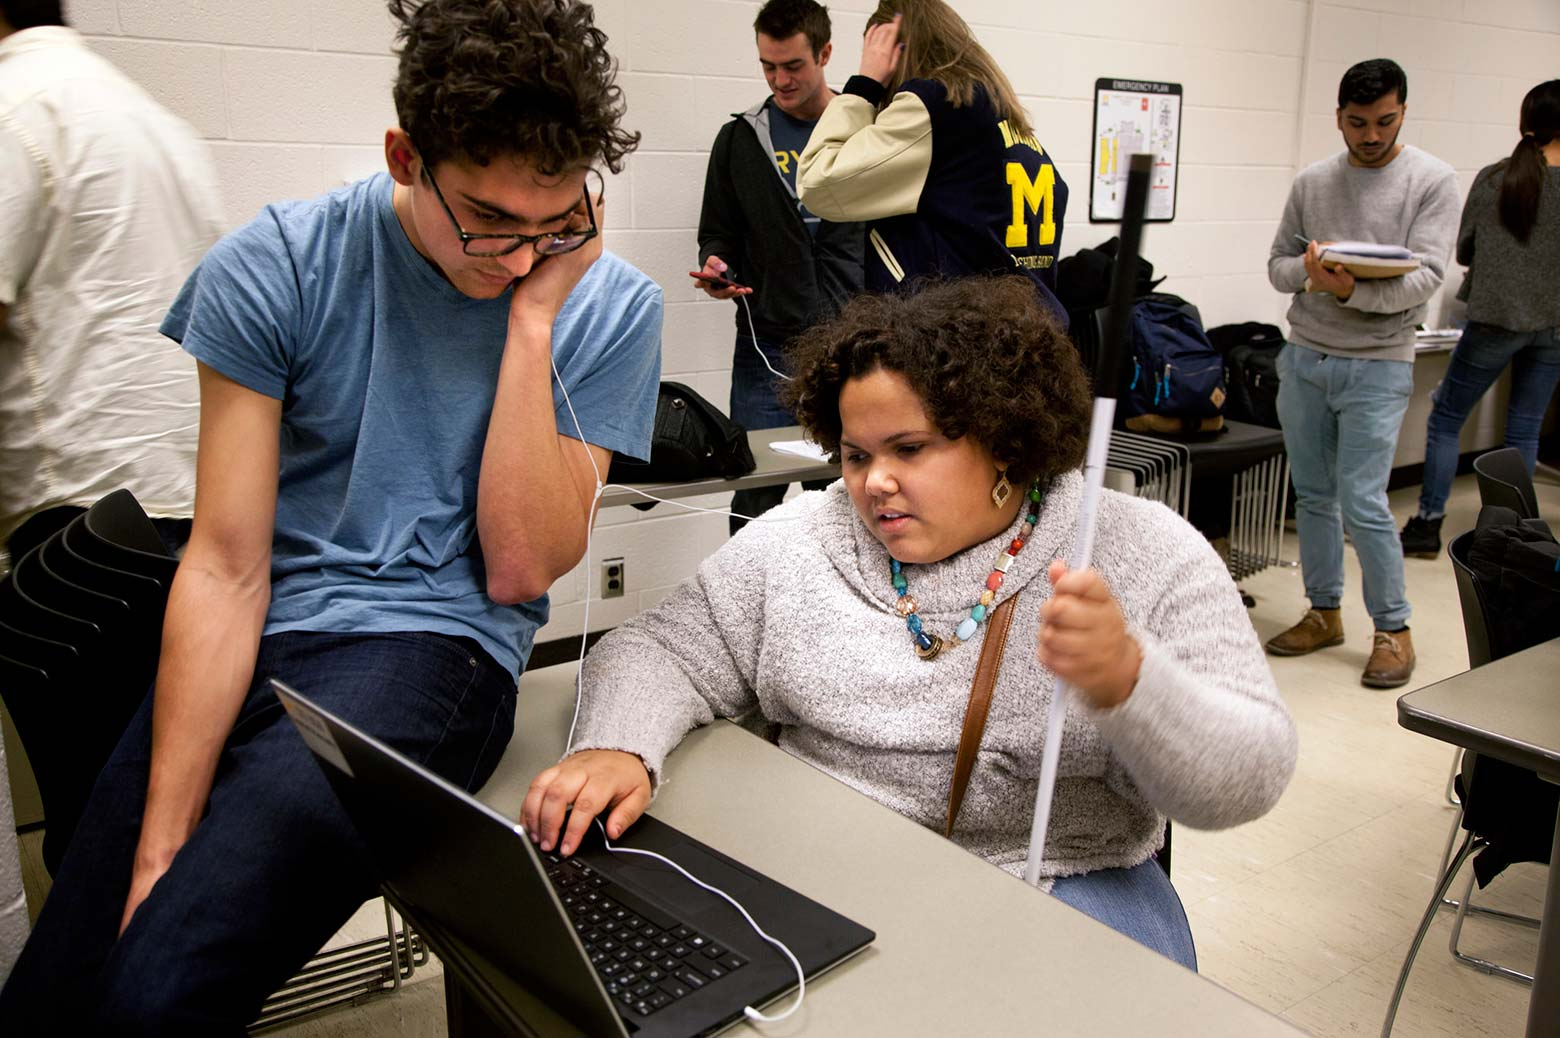 India West speaks with student Gabriel Pascualy